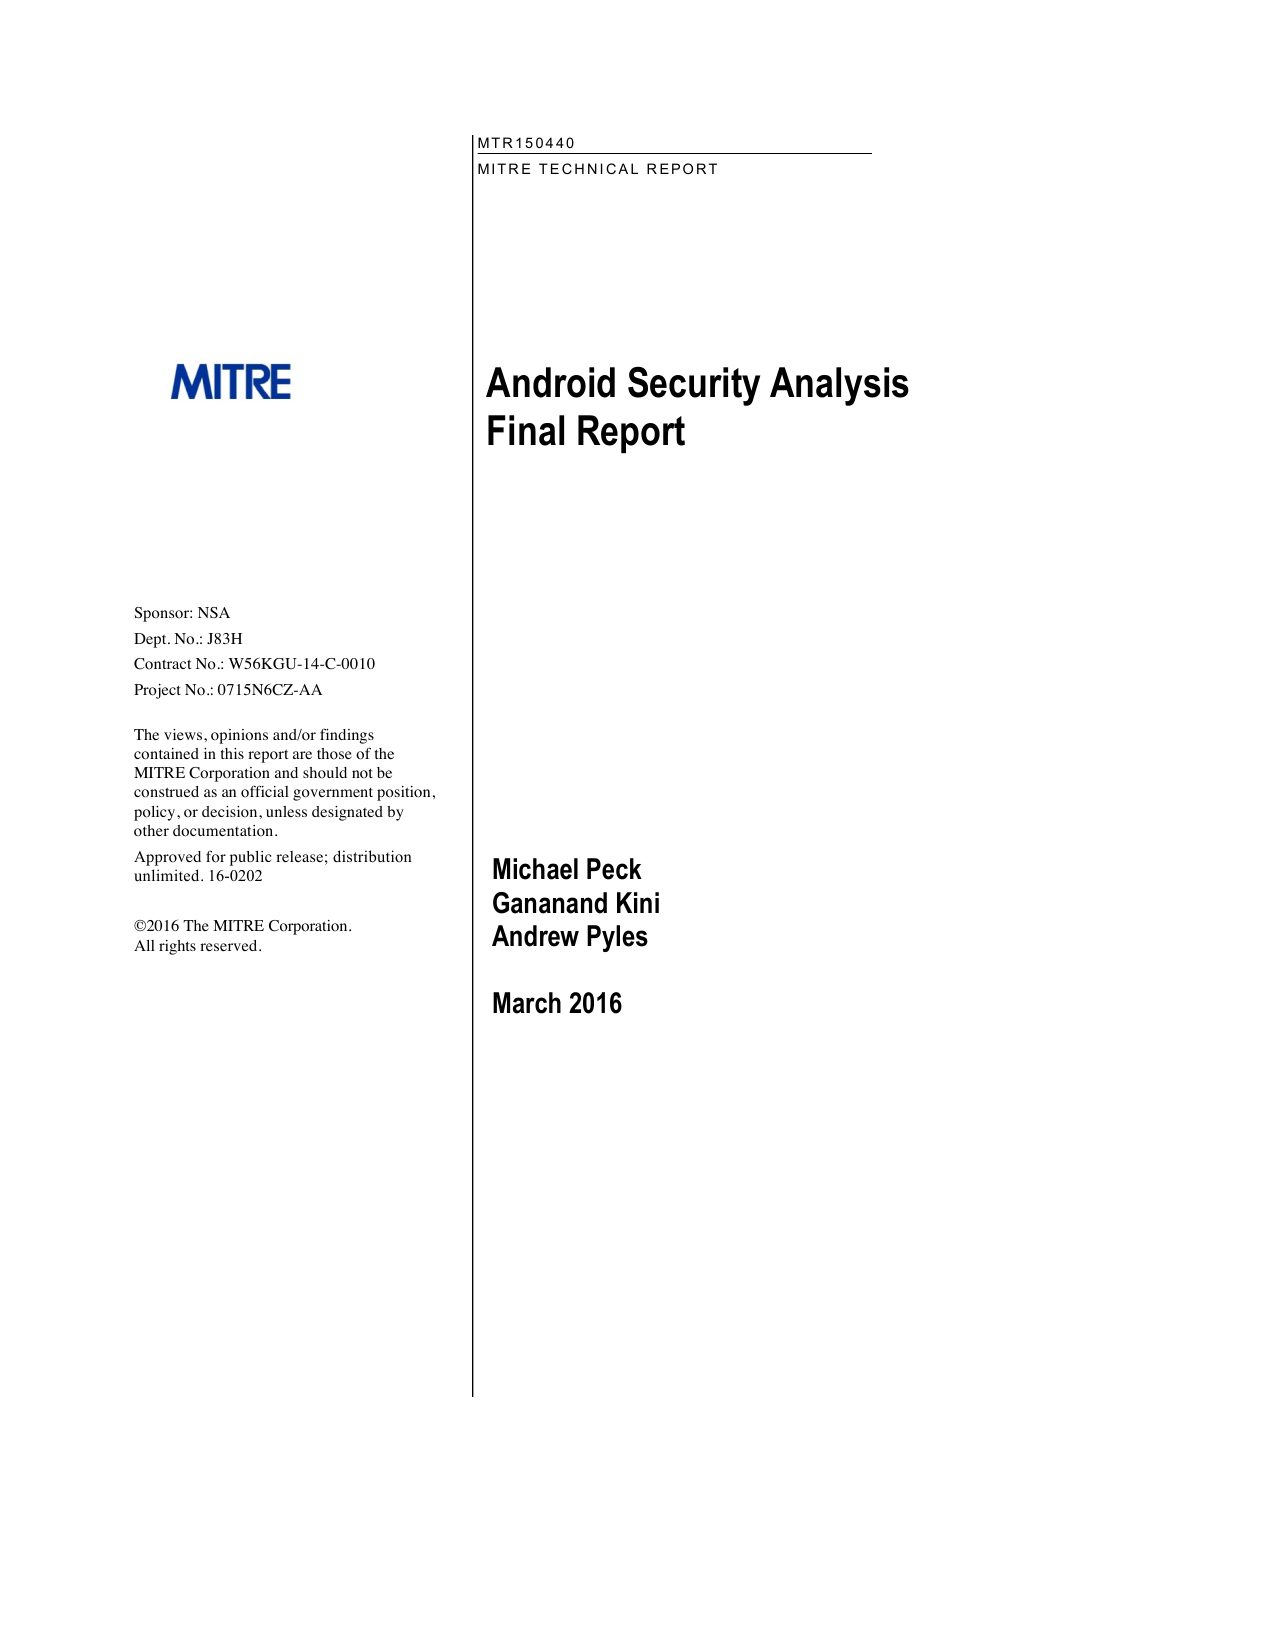 First page of the 'pr-16-0202-android-security-analysis-final-report' PDF